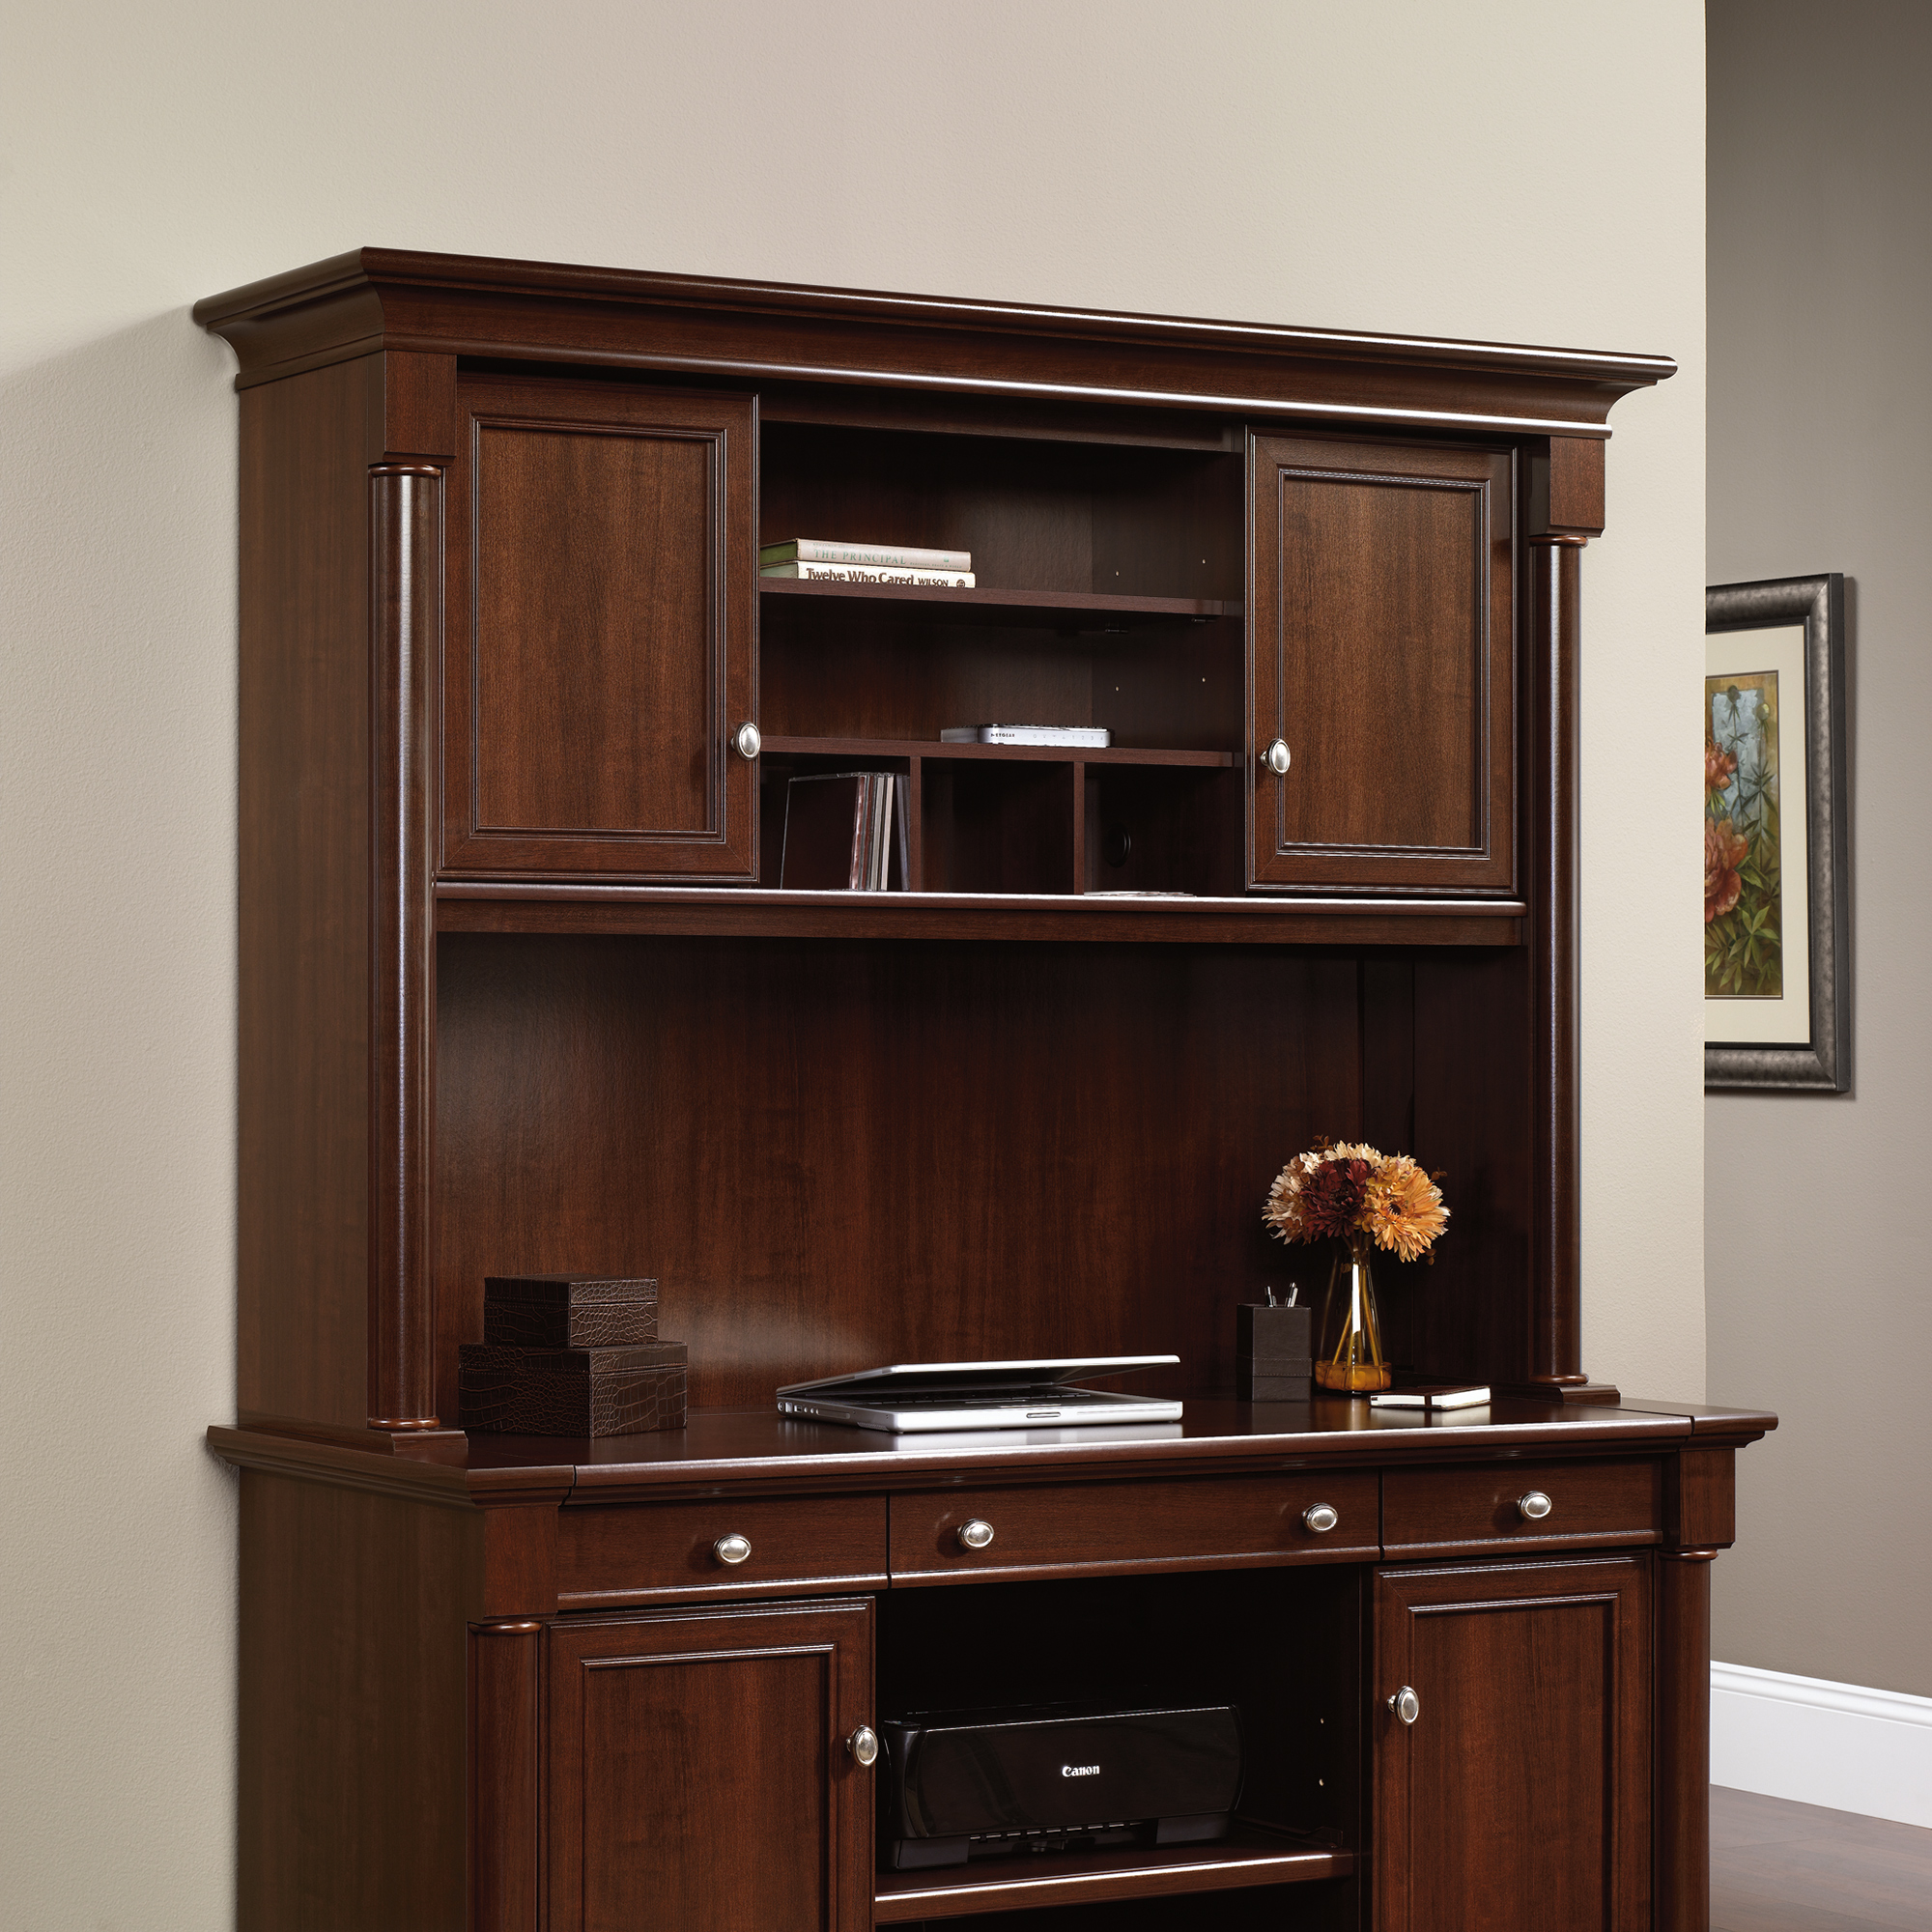 Oak Computer Desk with Hutch | Sauder Computer Desks | Maple Computer Desk